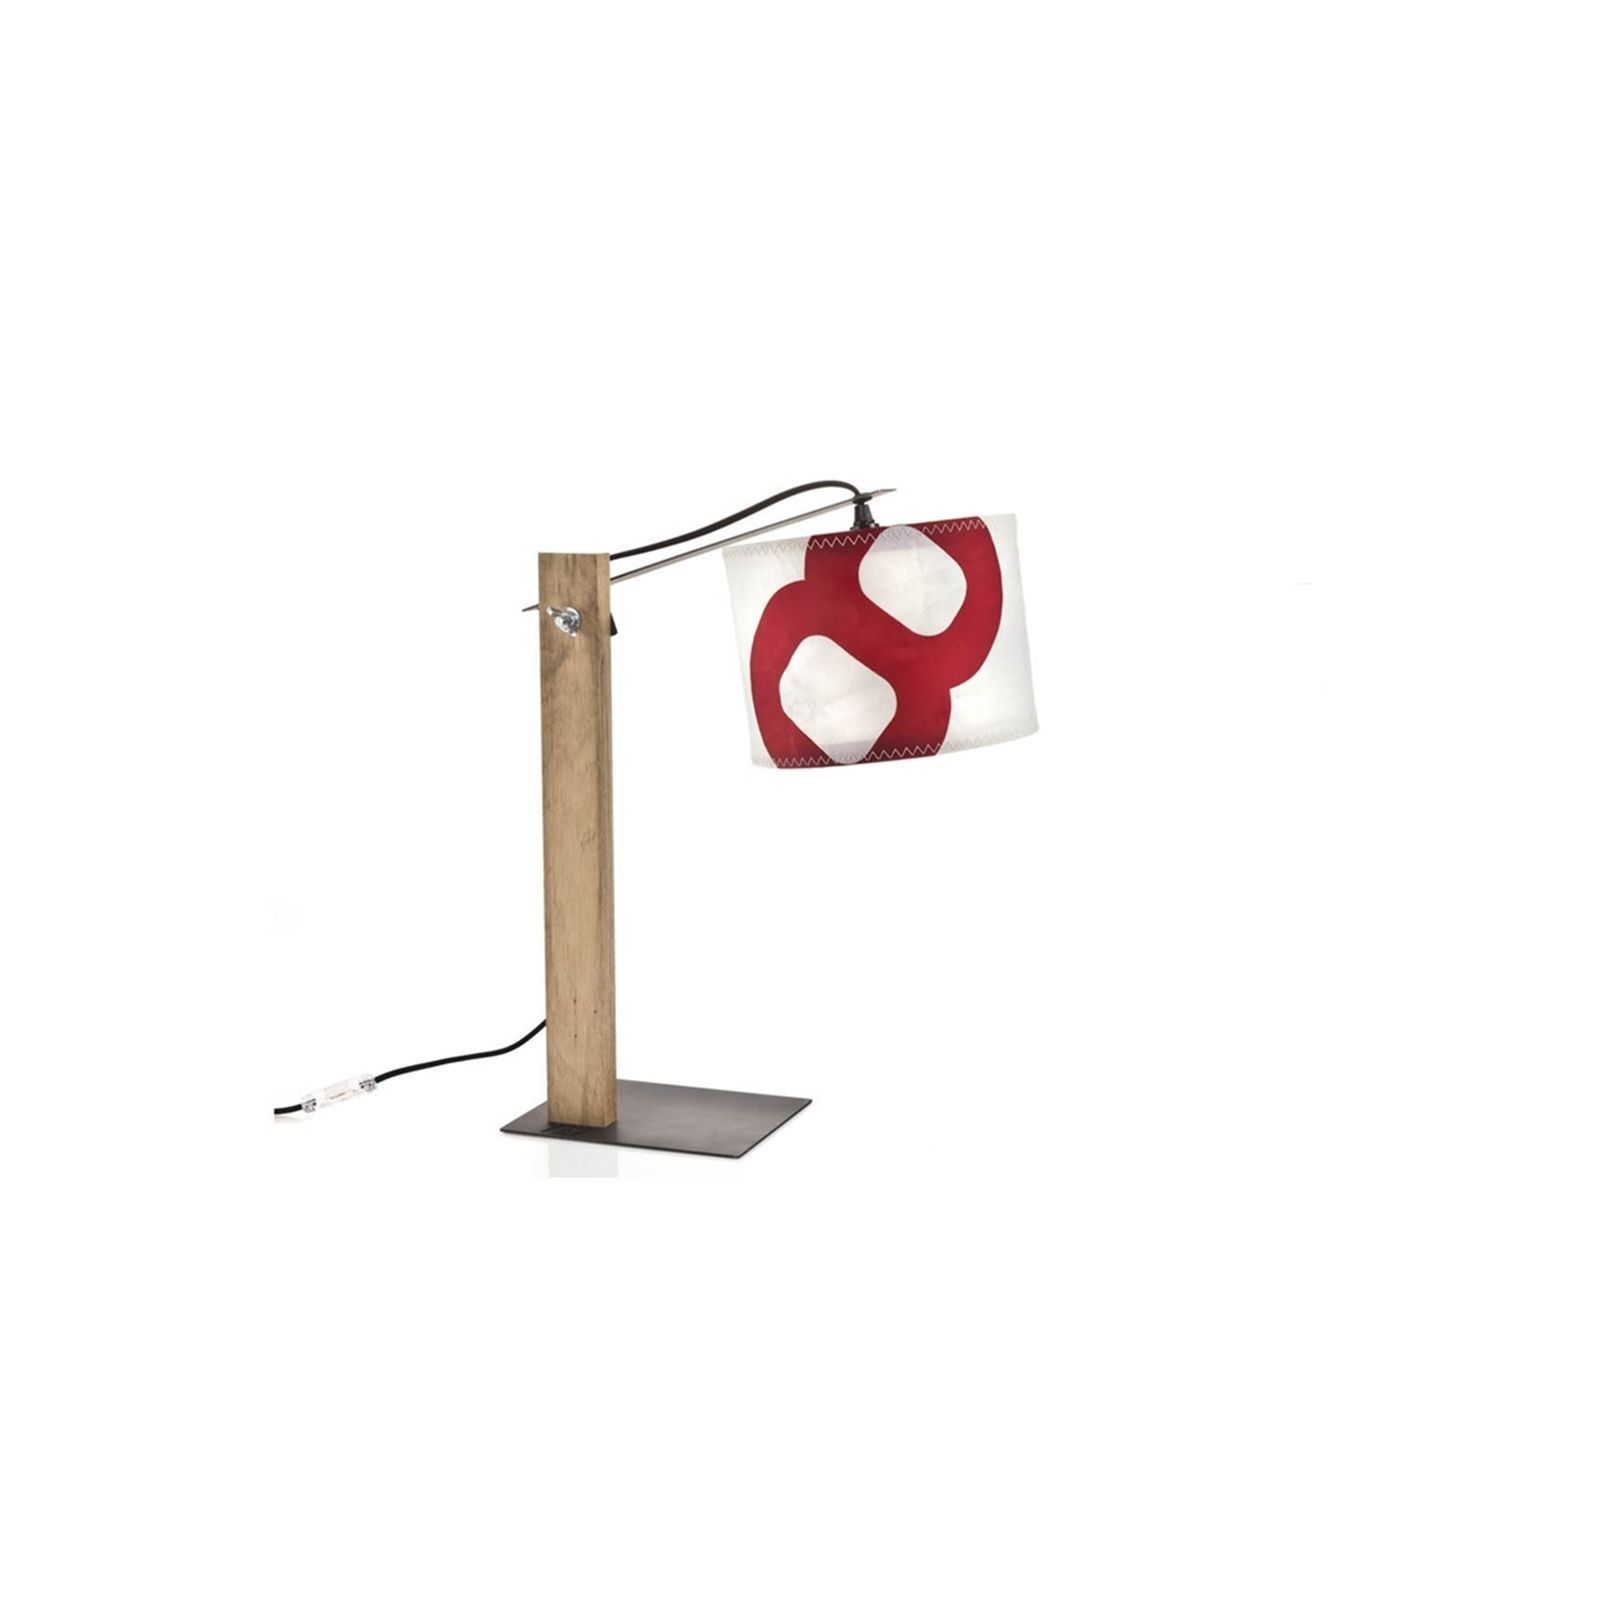 727 Sailbags lampe � poser - rouge